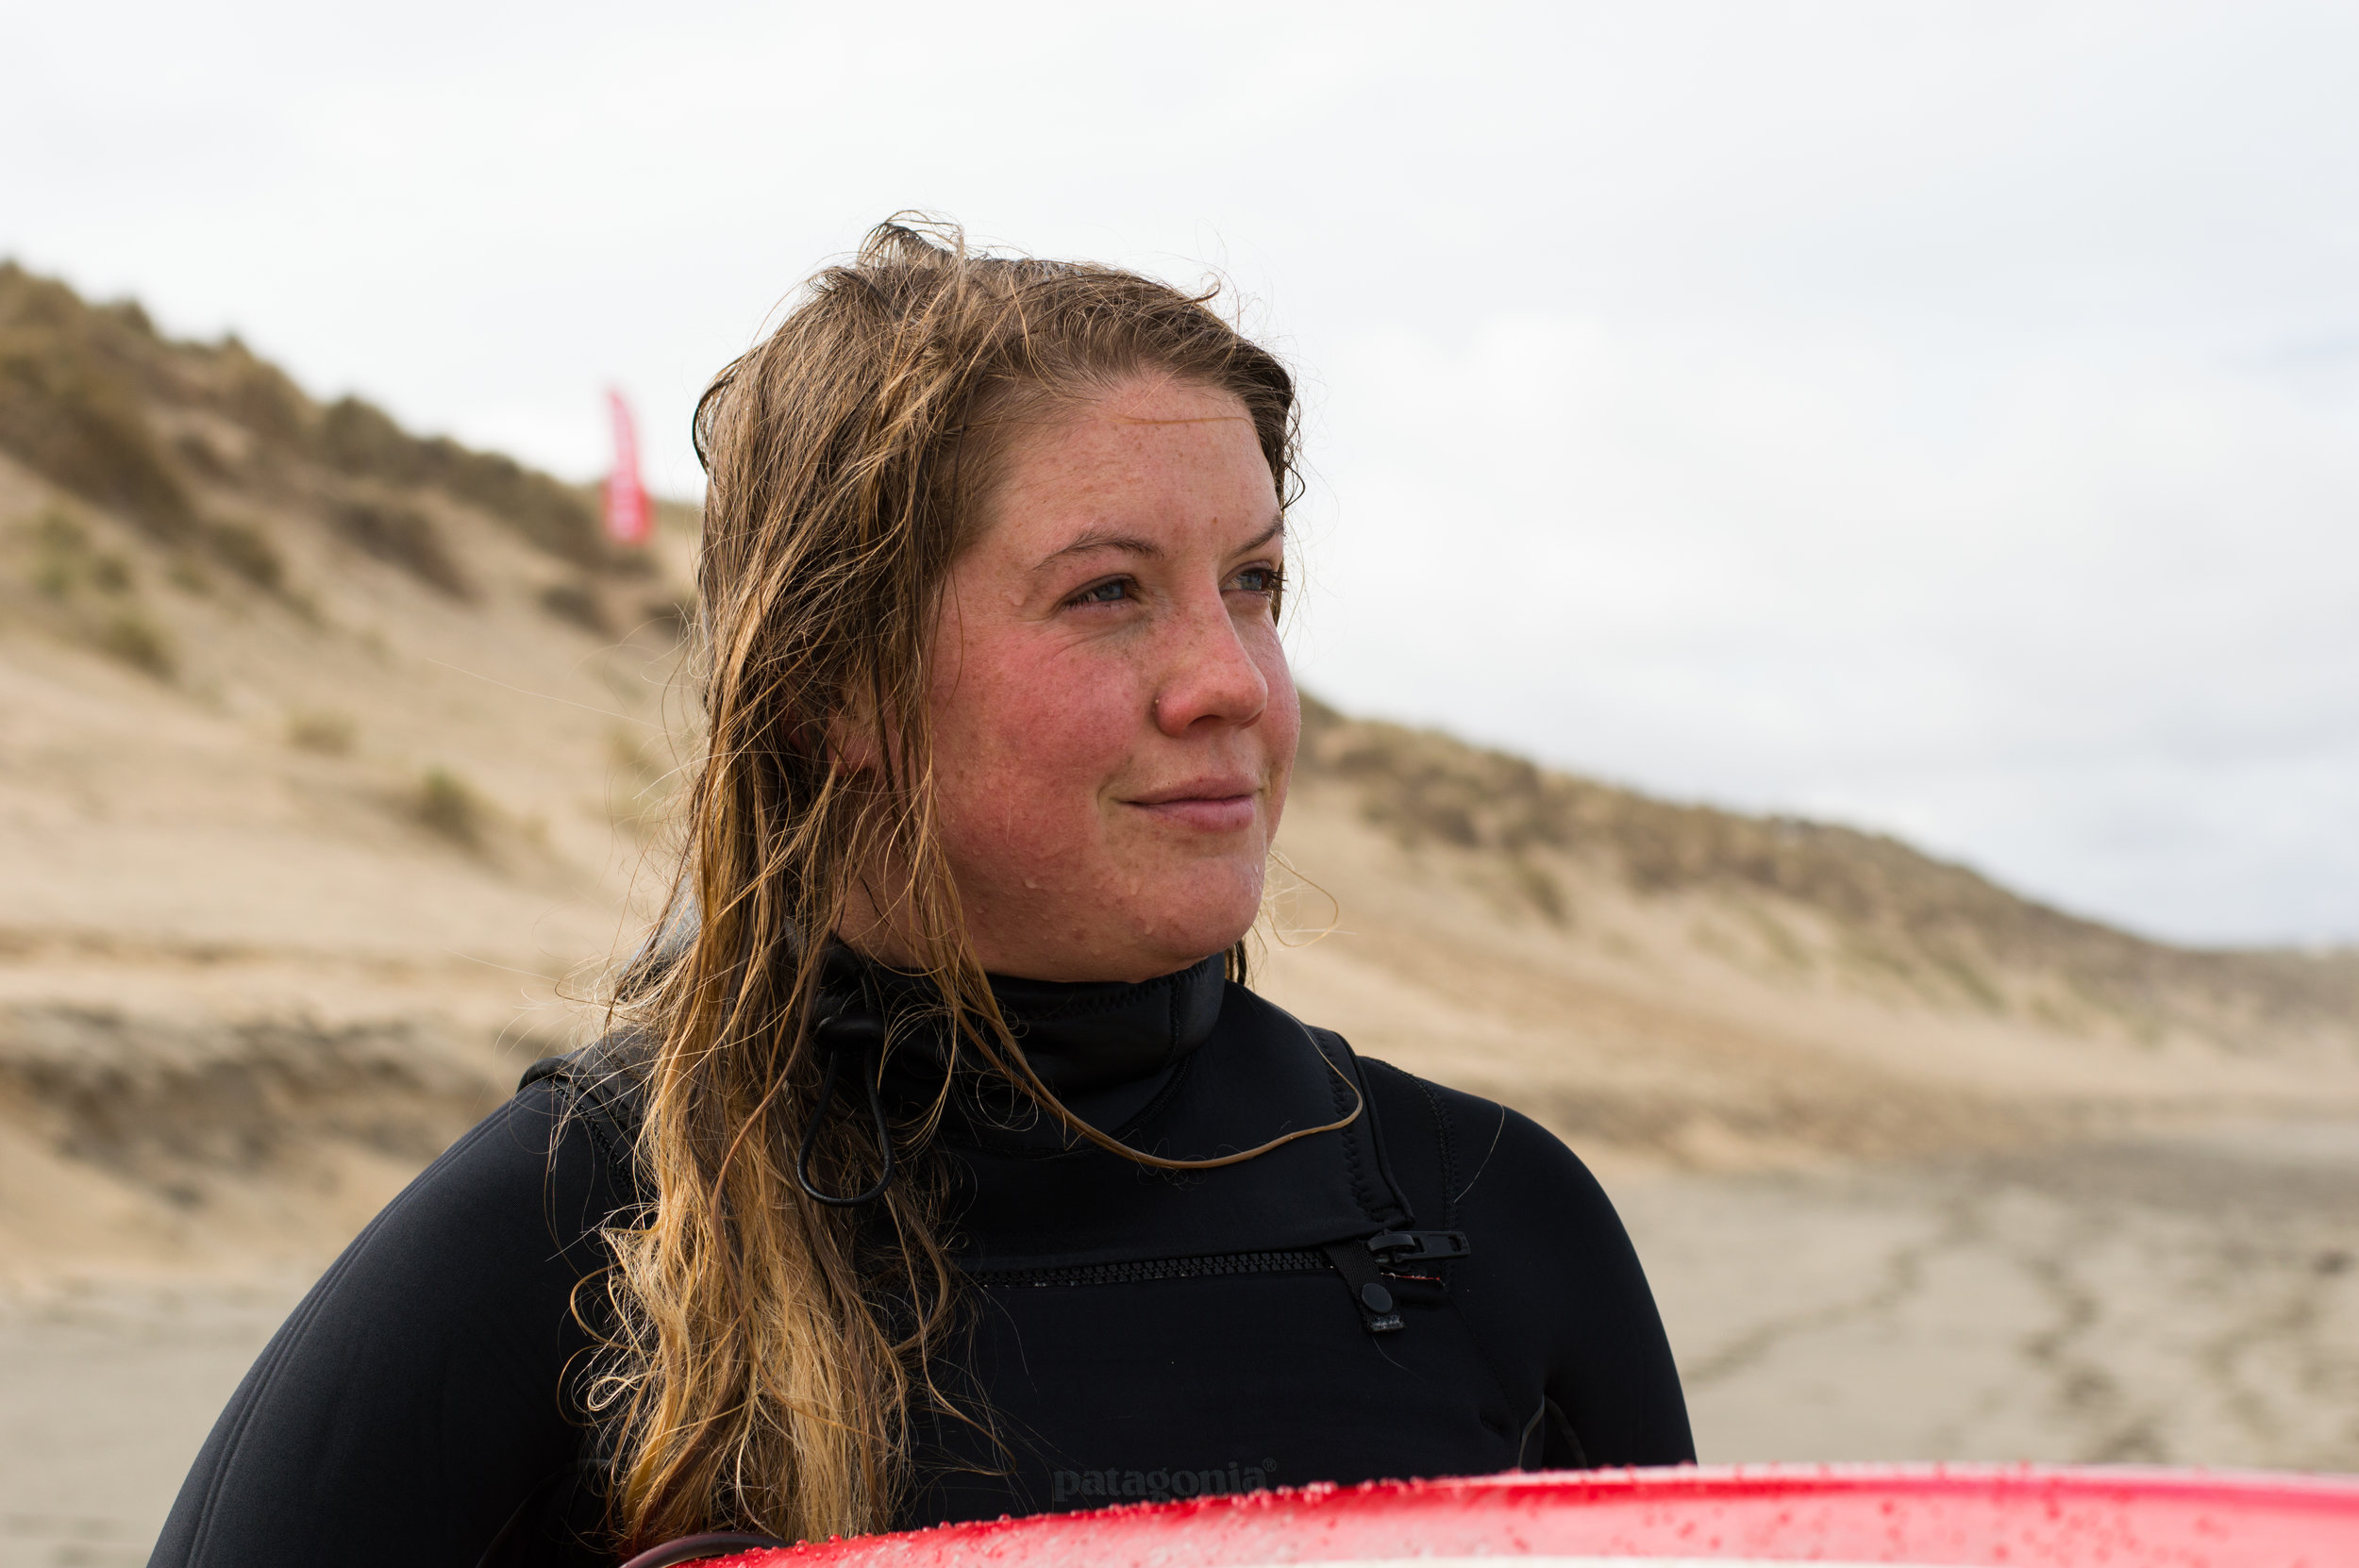 The steady intent look post-surfing    Zoe , April-2018. Sophie Bradley